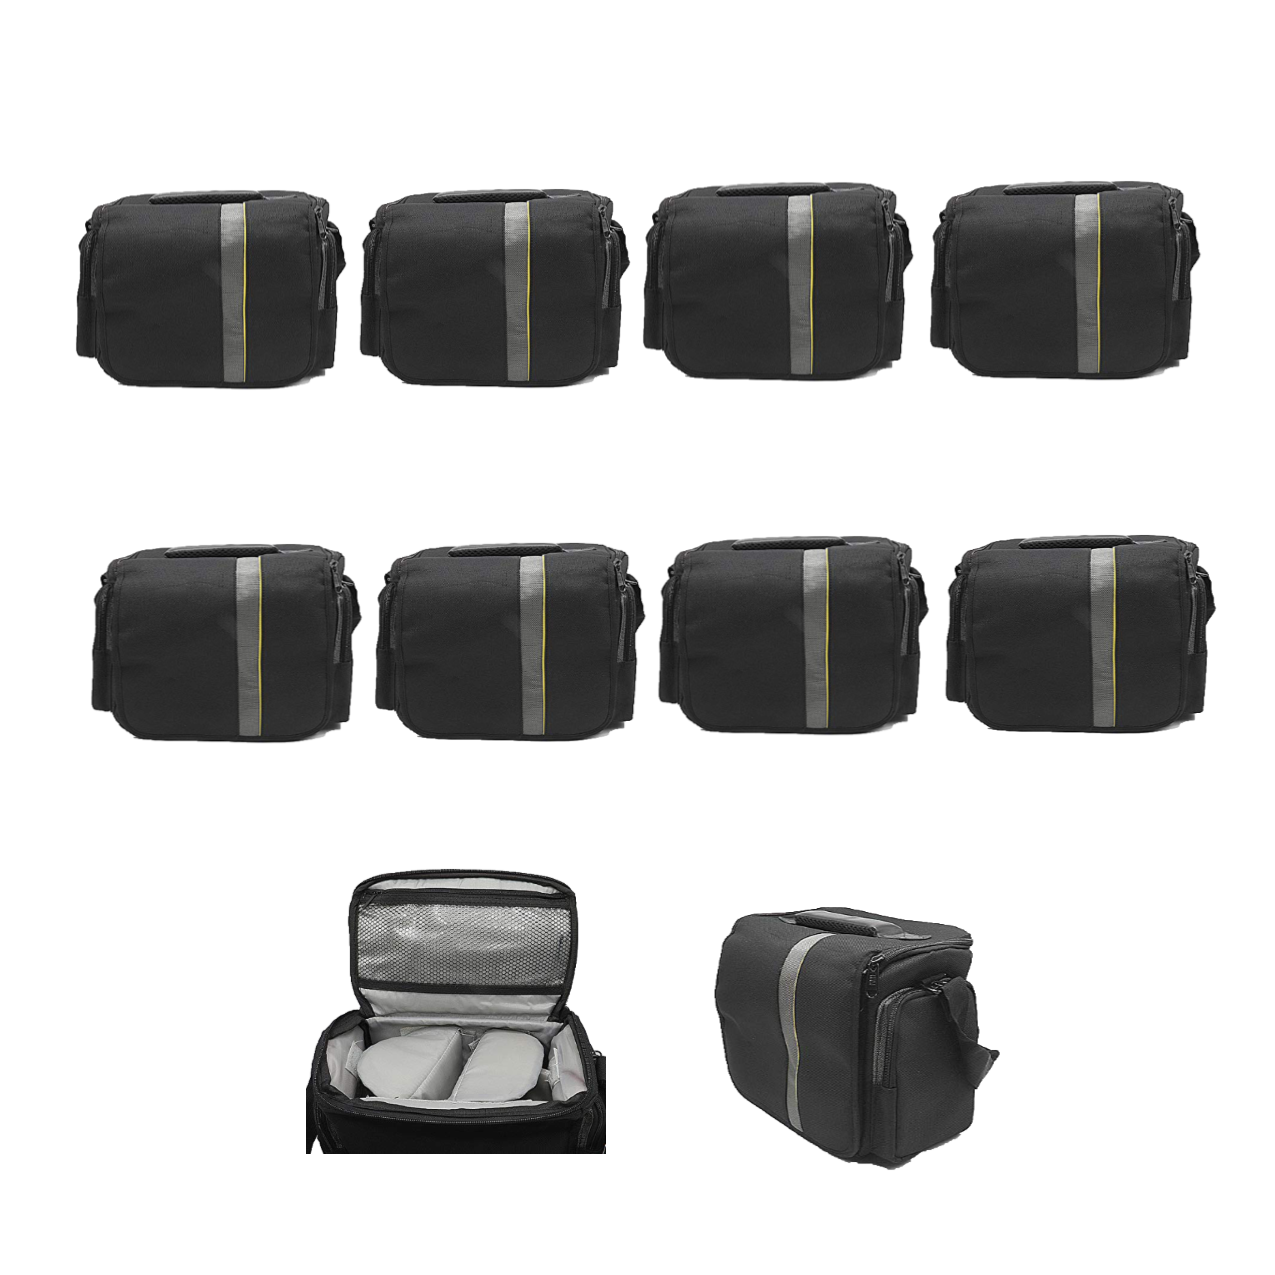 Waterproof Anti-Shock Dslr Camera Bag For Canon, Nikon, Samsung, And Sony Camera Bag -9004 Pack Of 10Pcs Camera Bags Camera Bags